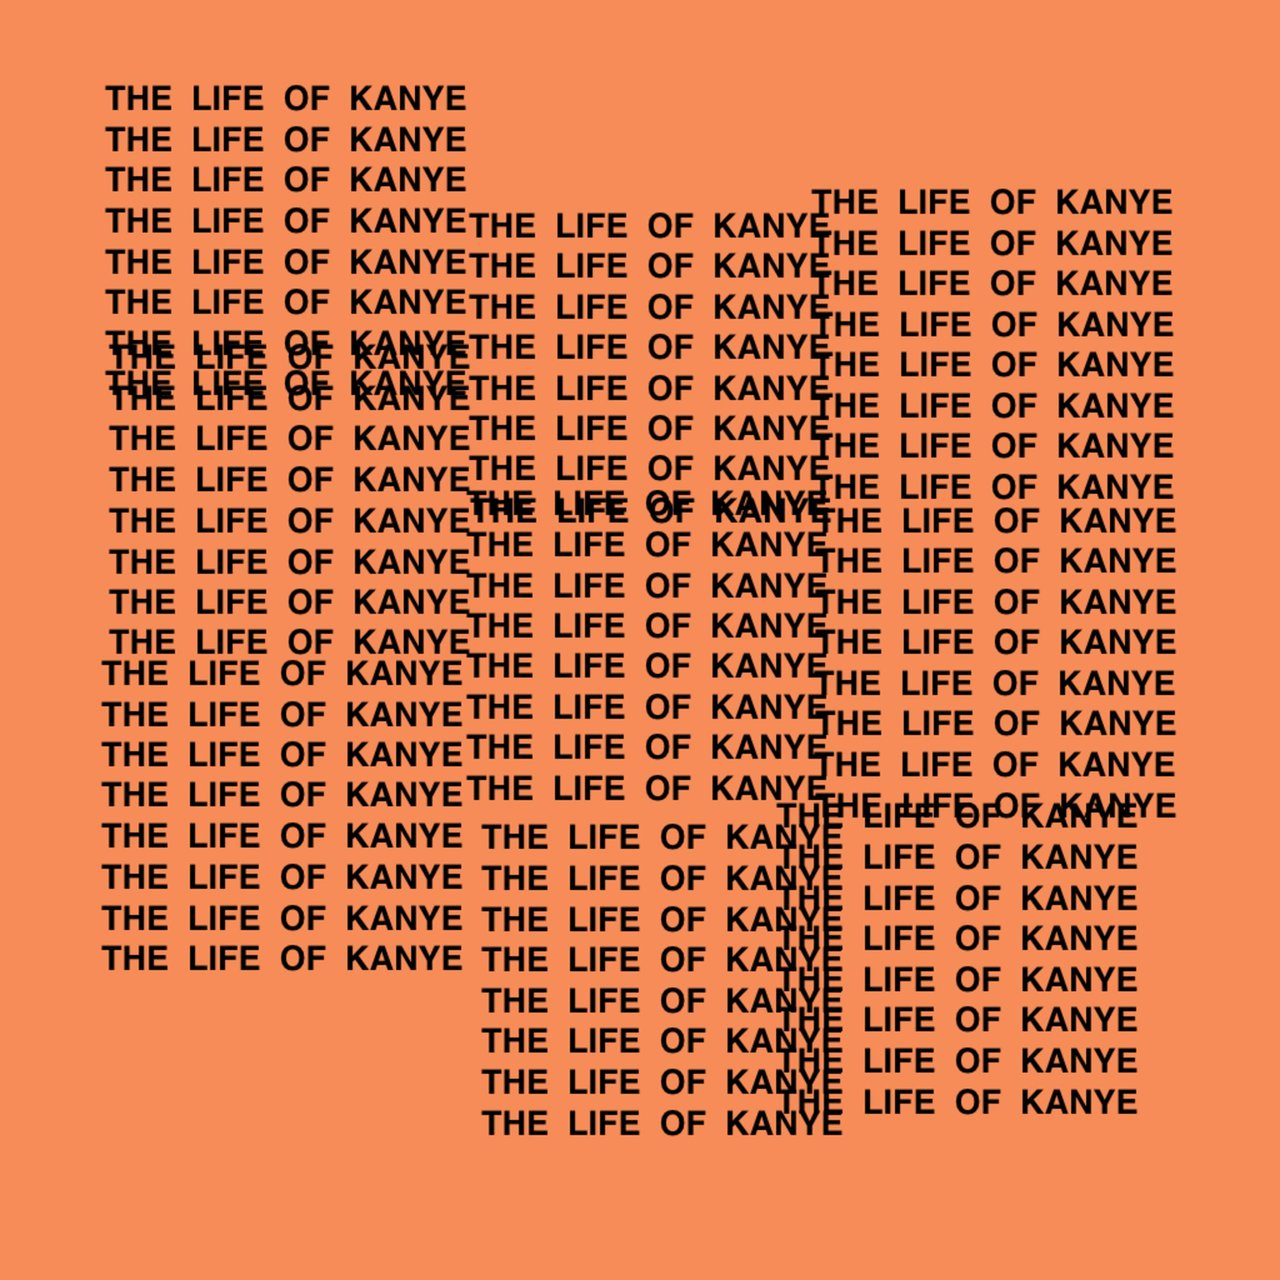 The Life of Kanye